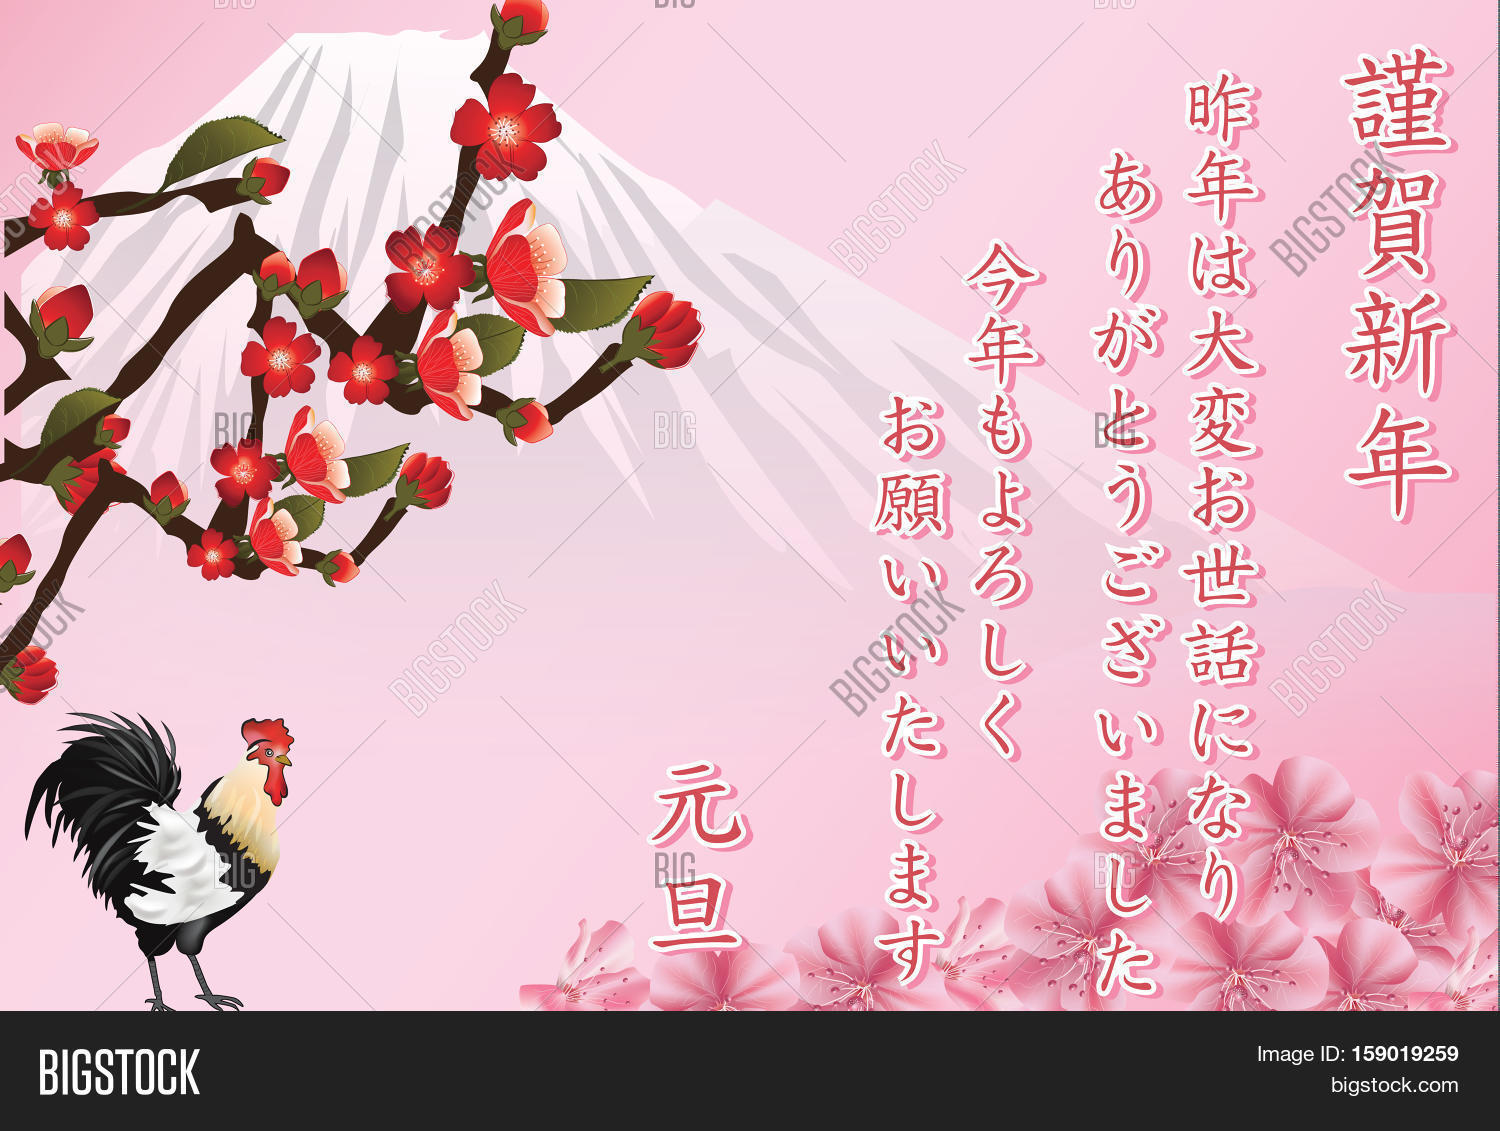 Japanese New Year Image Photo Free Trial Bigstock